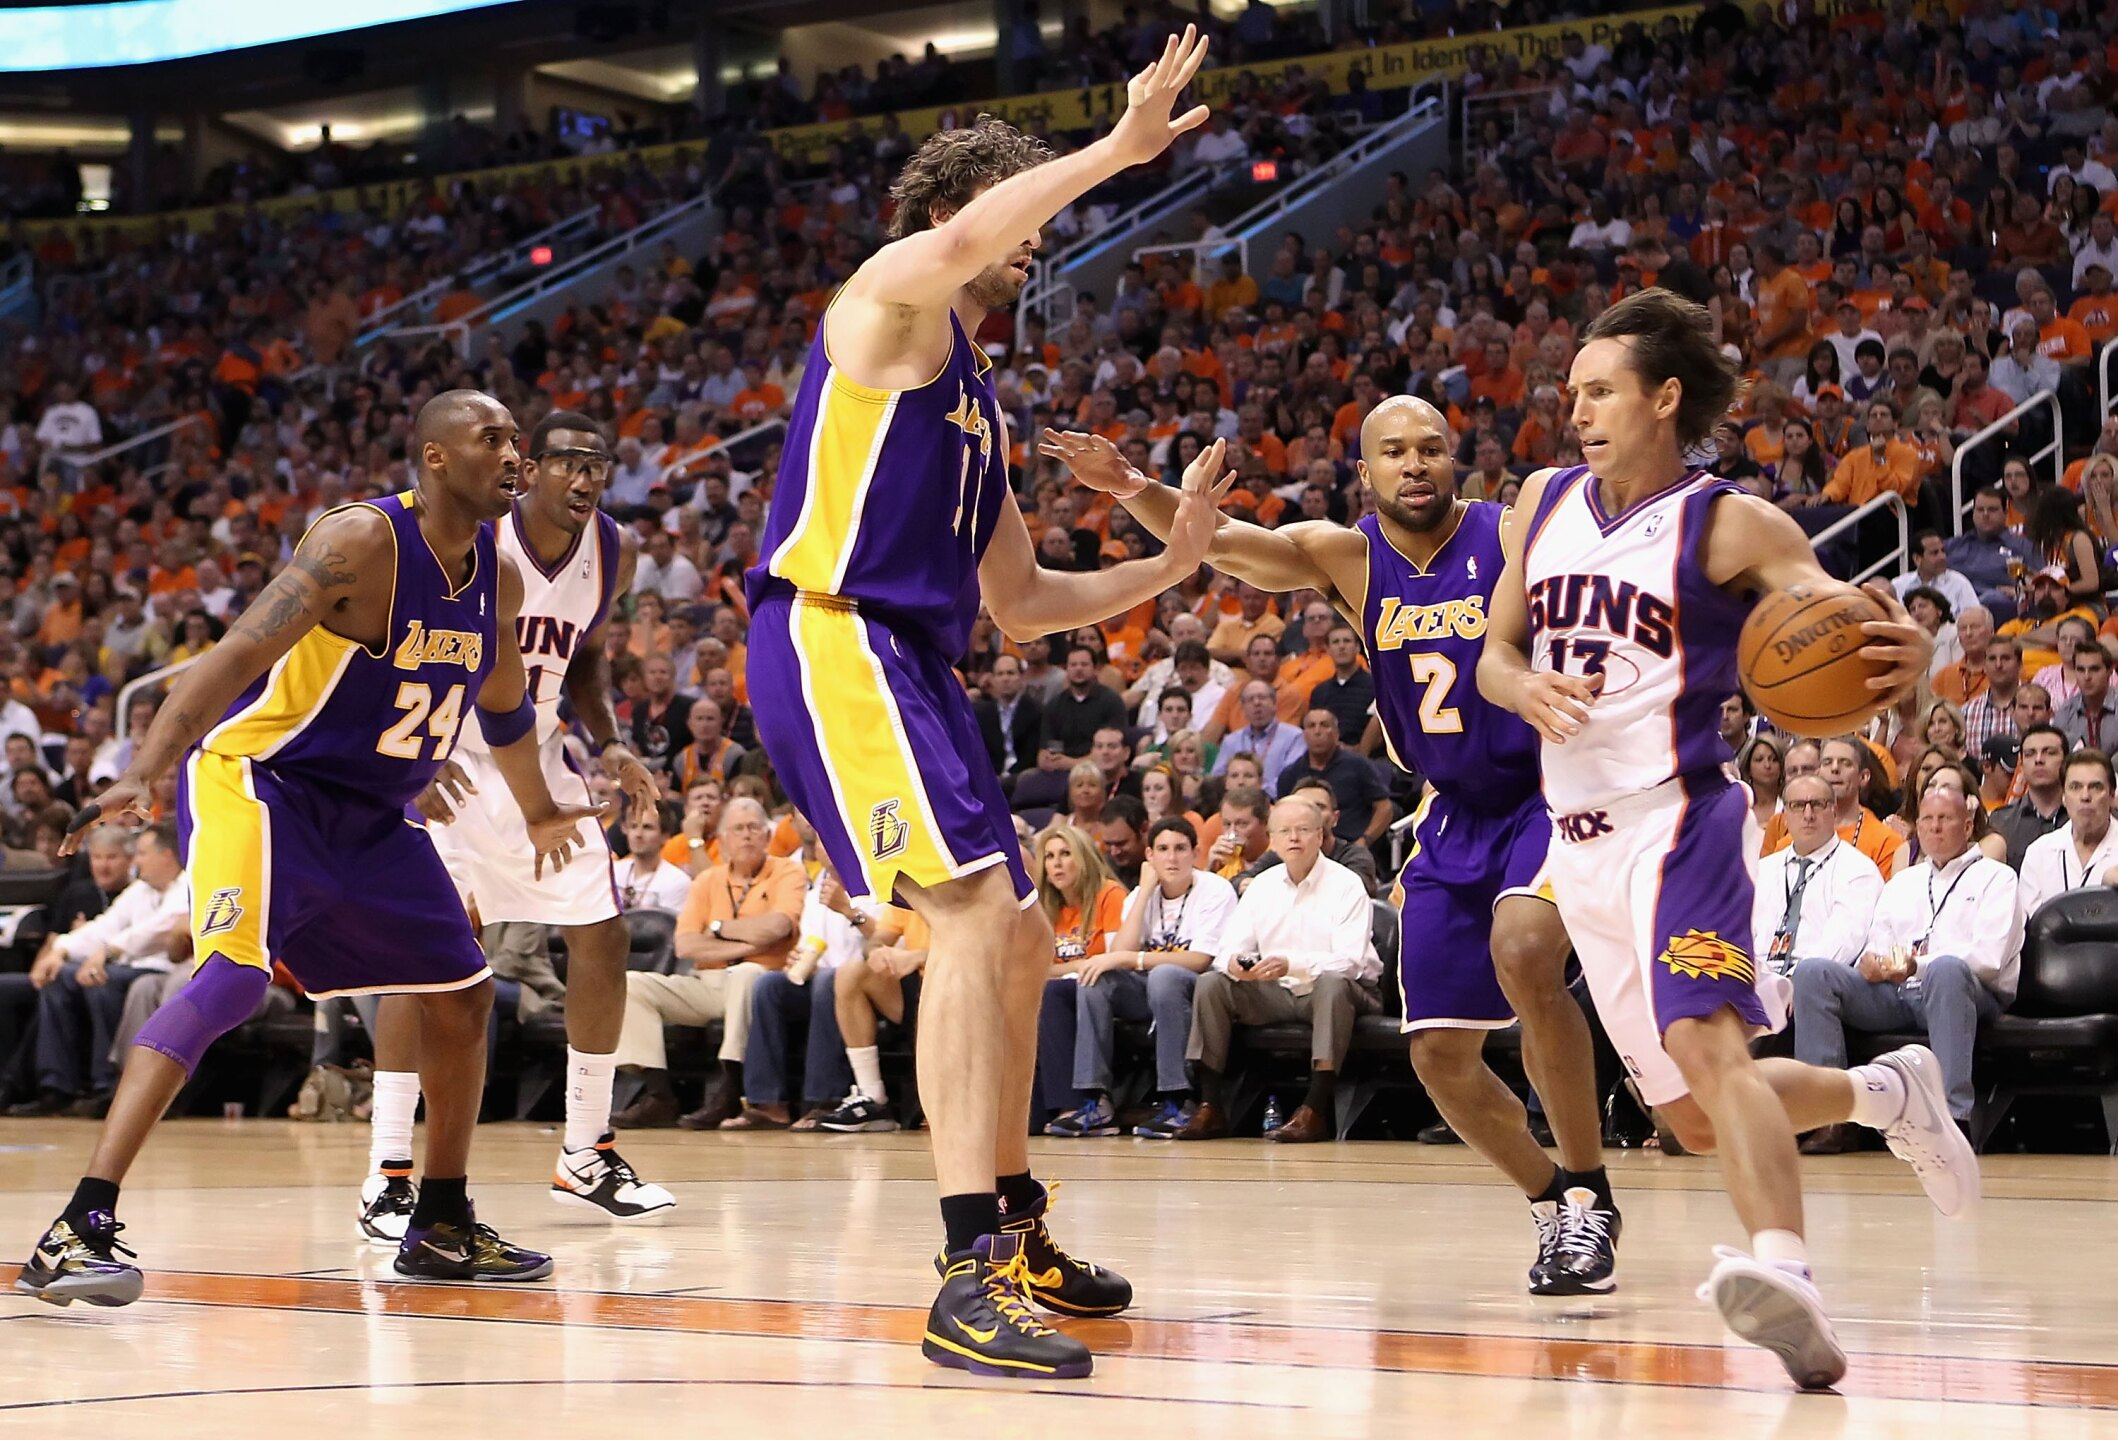 Los Angeles Lakers v Phoenix Suns, Game 4